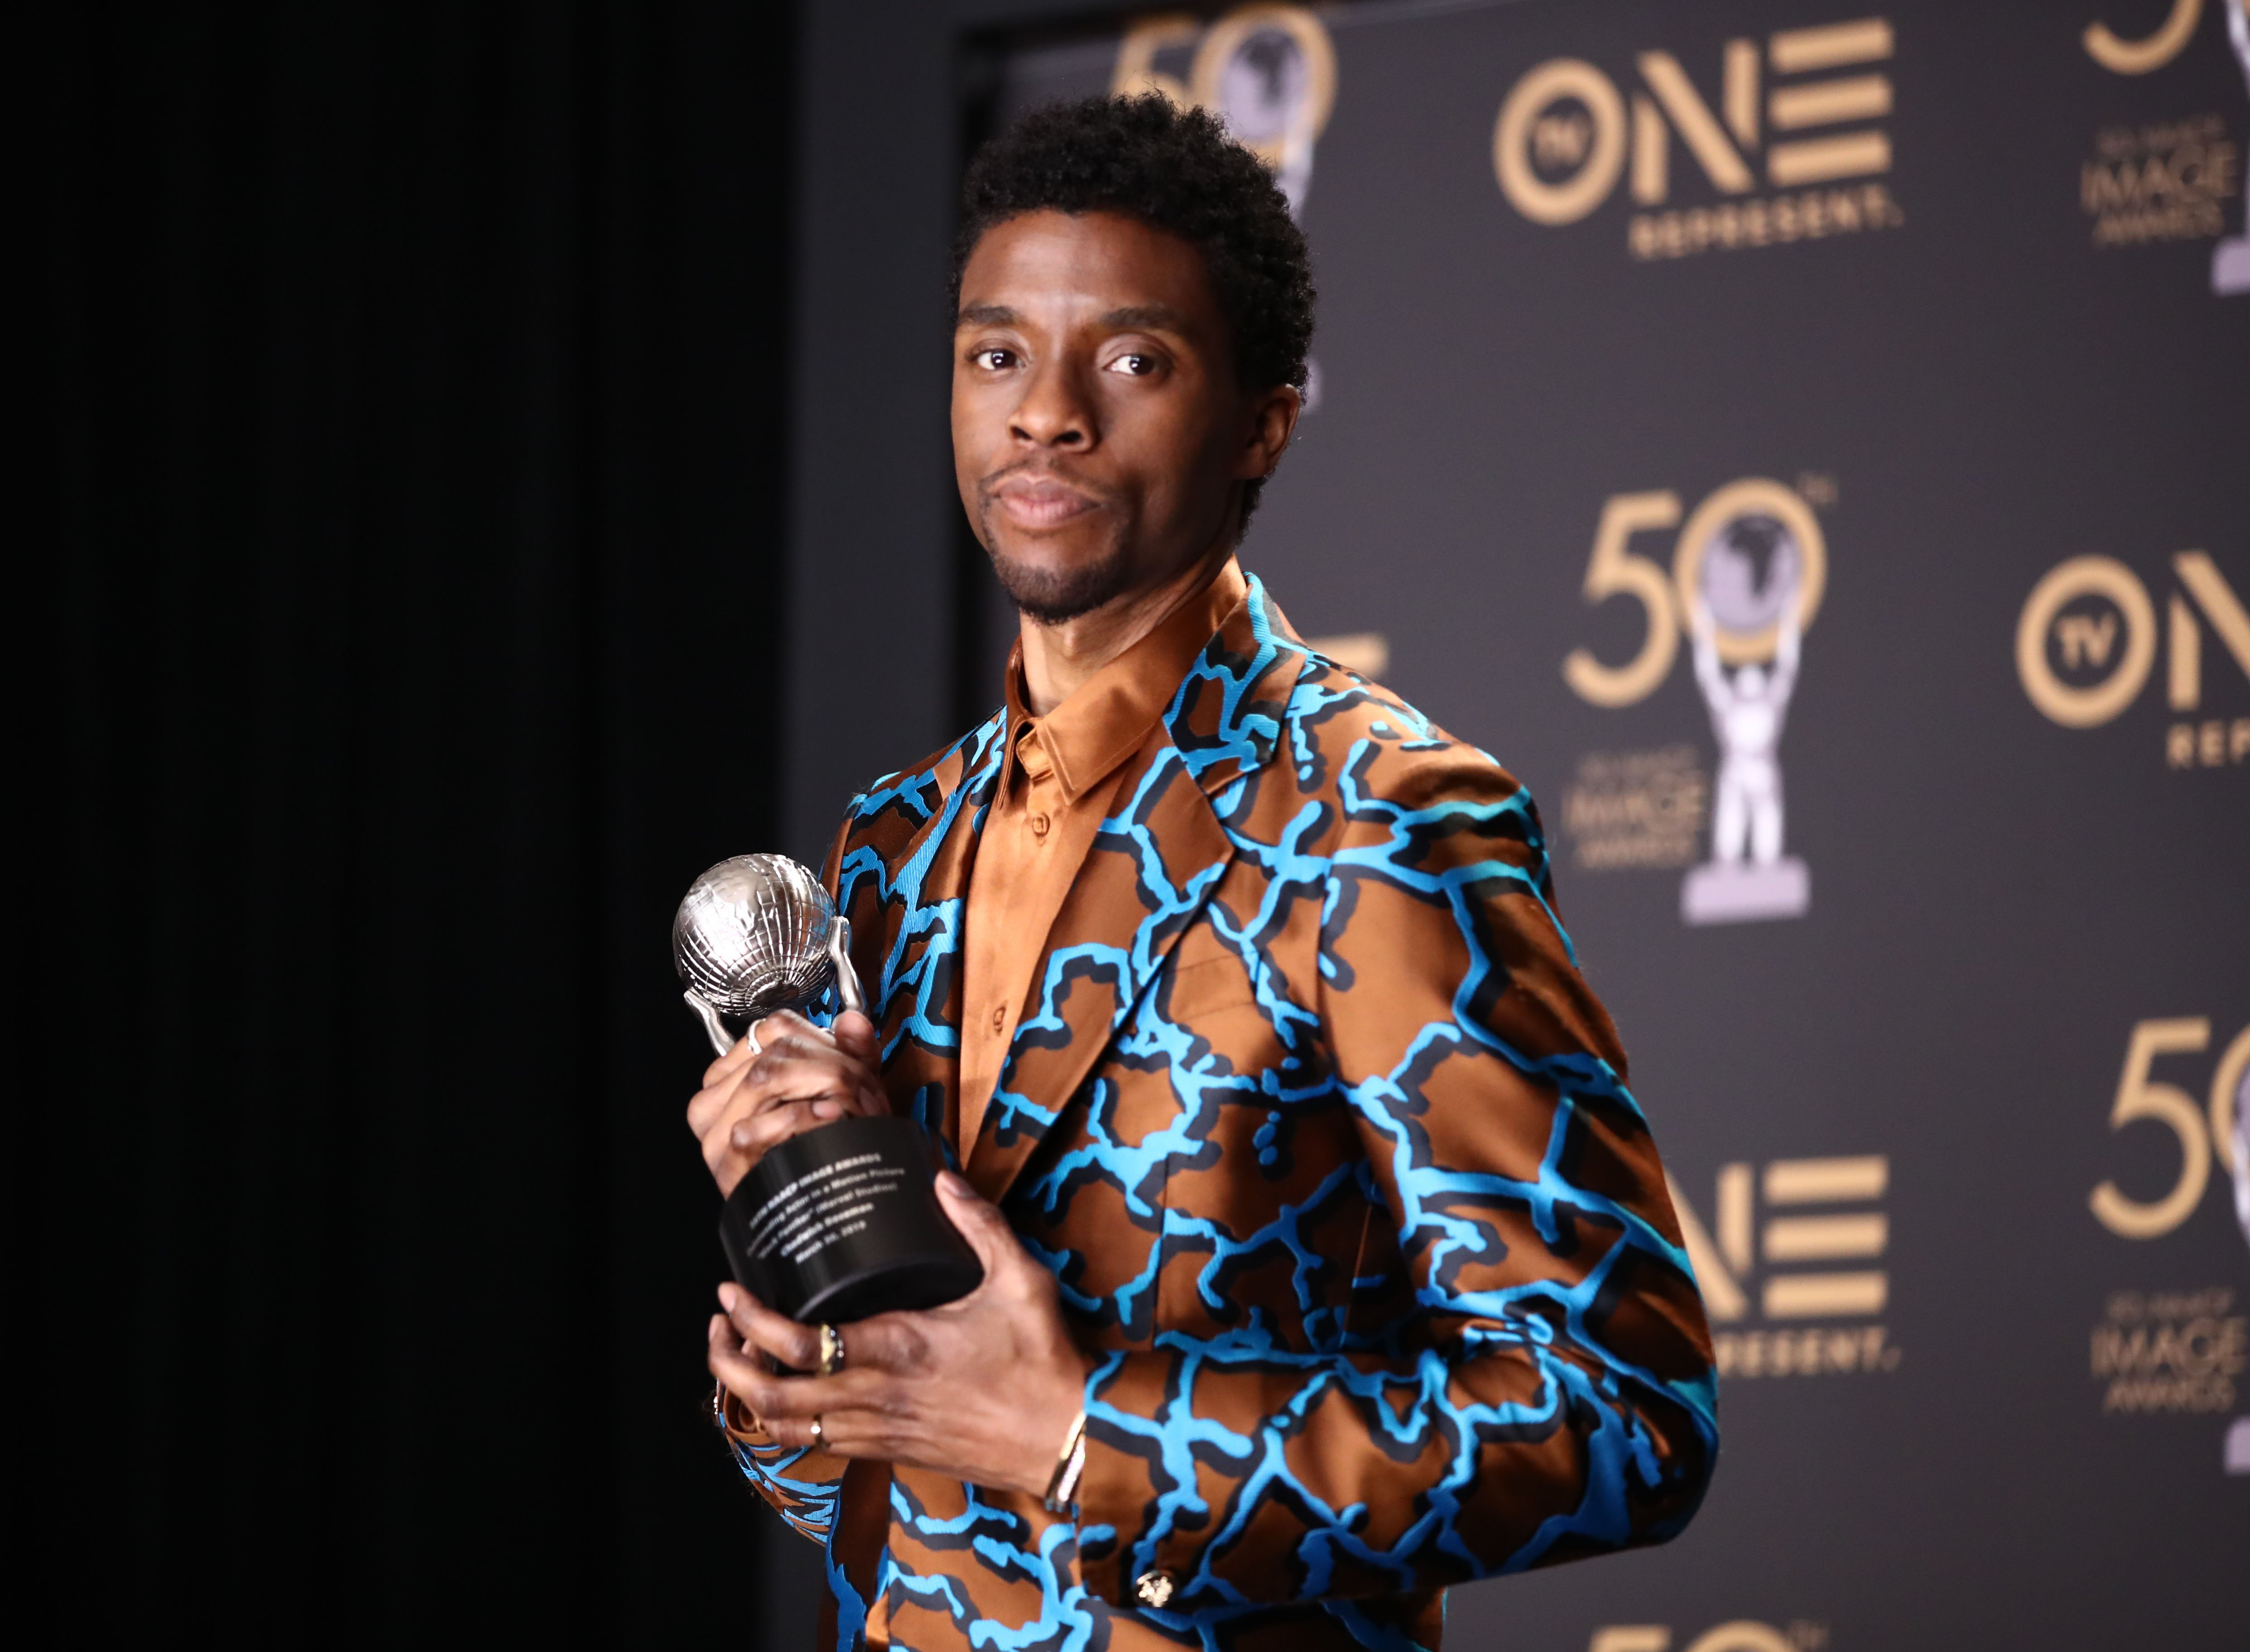 Image Credits: Getty Images / Rich Fury / FilmMagic | Chadwick Boseman, winner of Outstanding Actor in a Motion Picture, attends the 50th NAACP Image Awards at Dolby Theatre on March 30, 2019 in Hollywood, California.